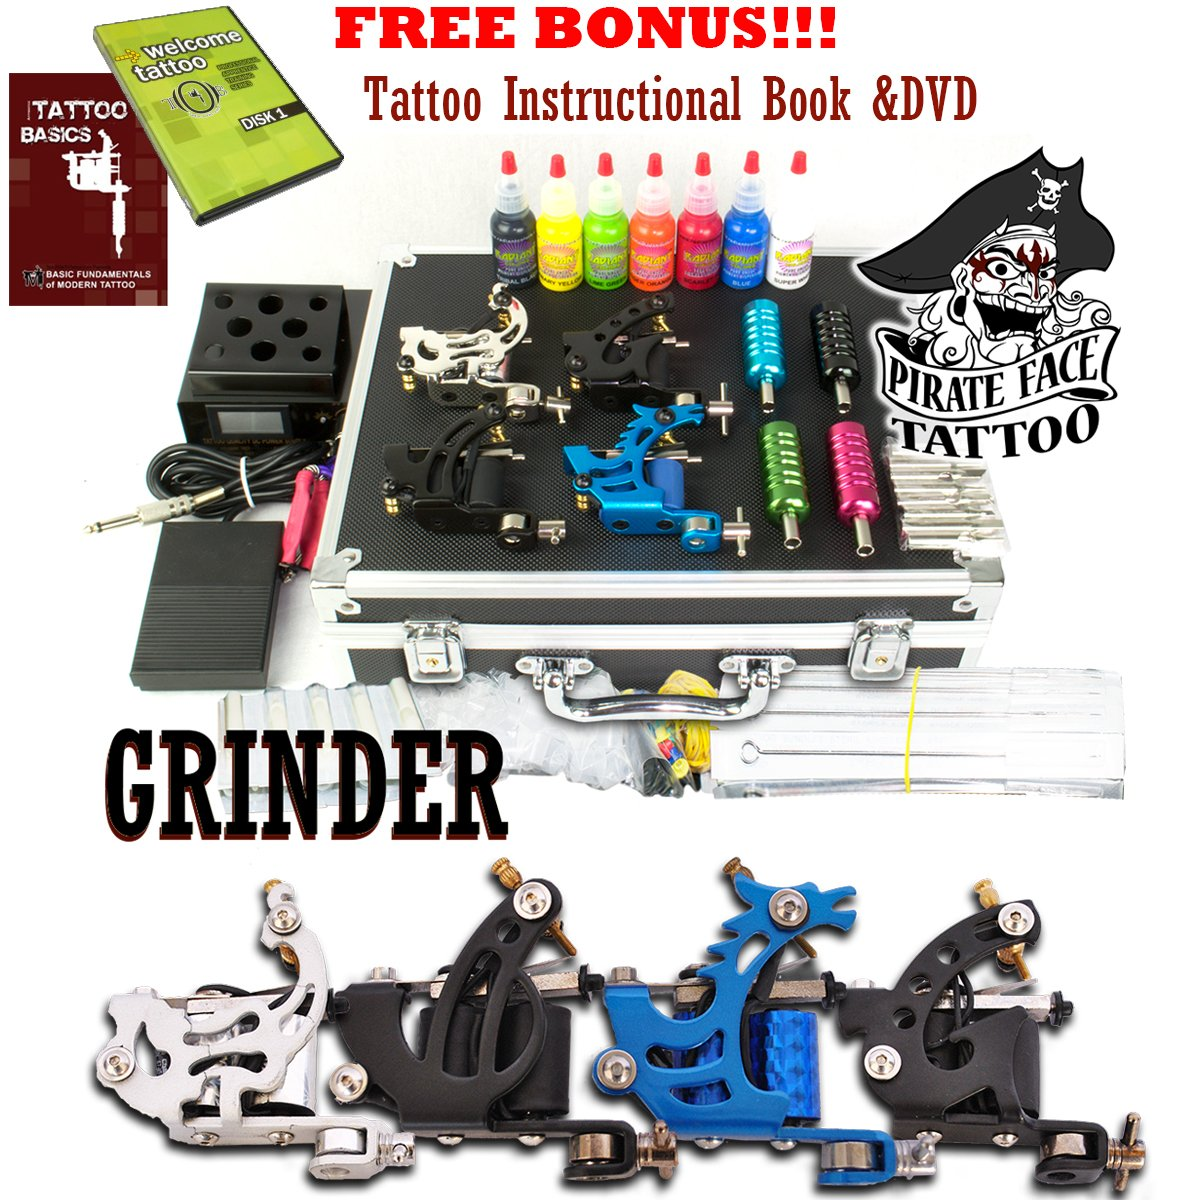 Pirate Face Tattoo Grinder Complete Tattoo Kit with Accessories